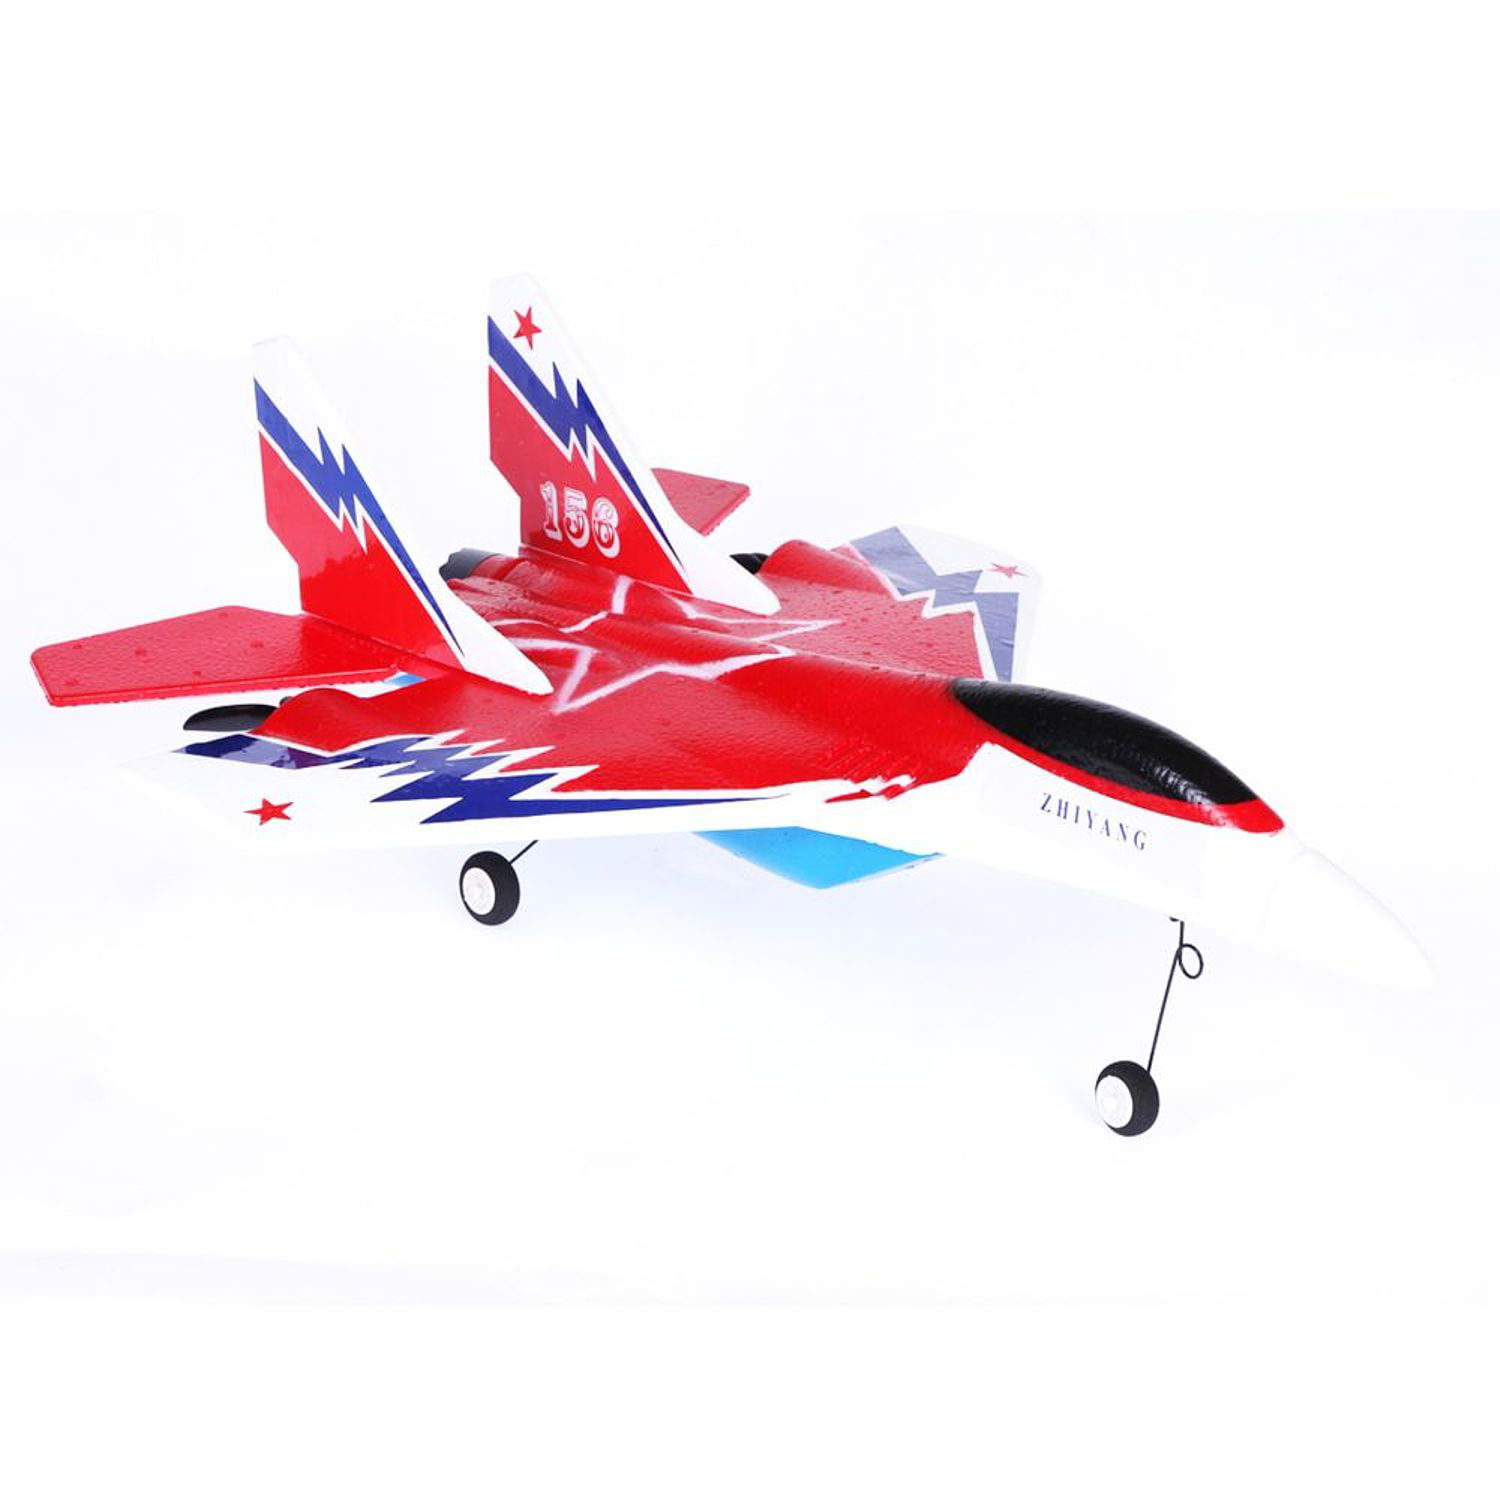 2.4G 2-CH Glider RC Jets Radio Control Plane Airplane Aircraft Ready to Fly (Gift Idea) by